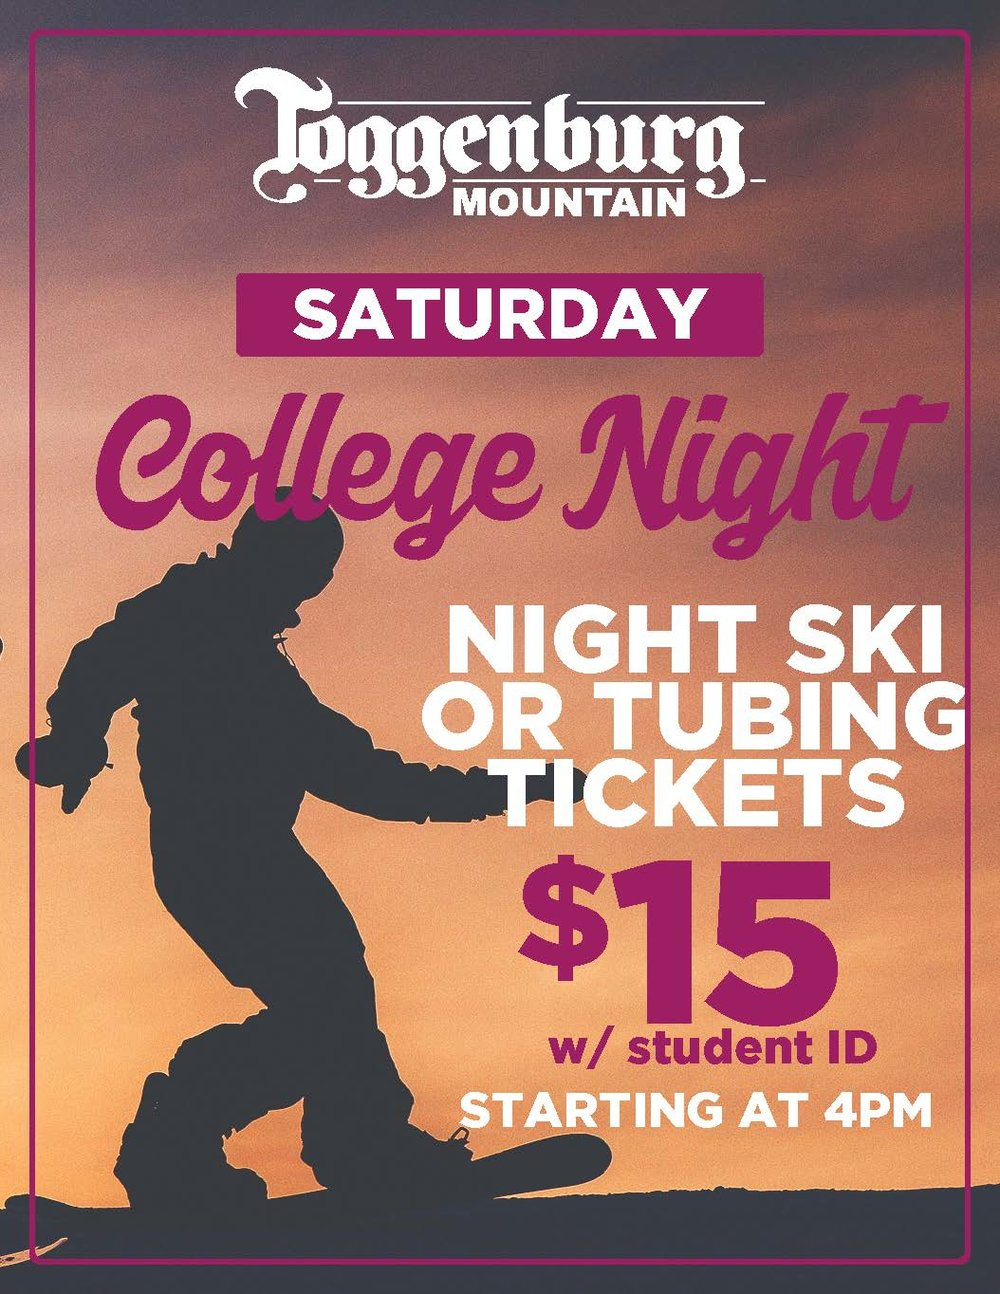 WHOOT WHOOT COLLEGE NIGHT! -